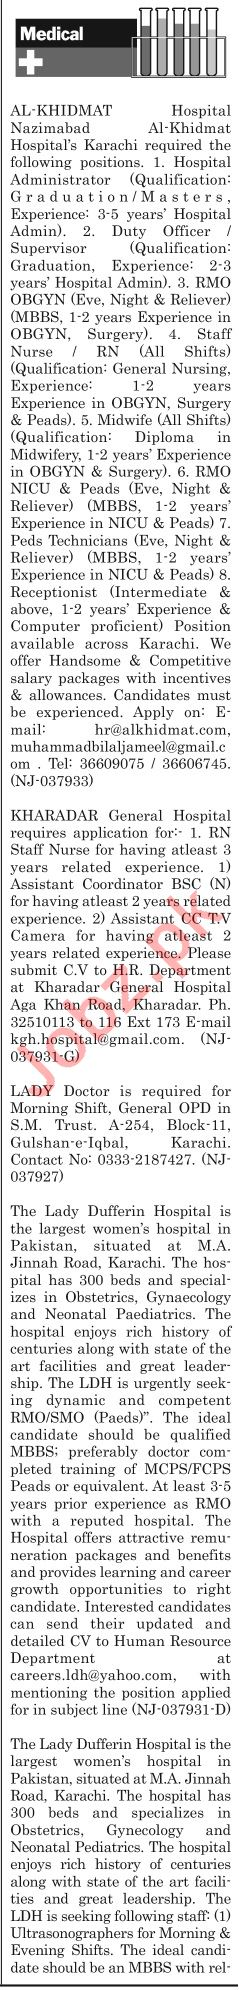 The News Sunday Classified Ads 23rd June 2019 for Medical